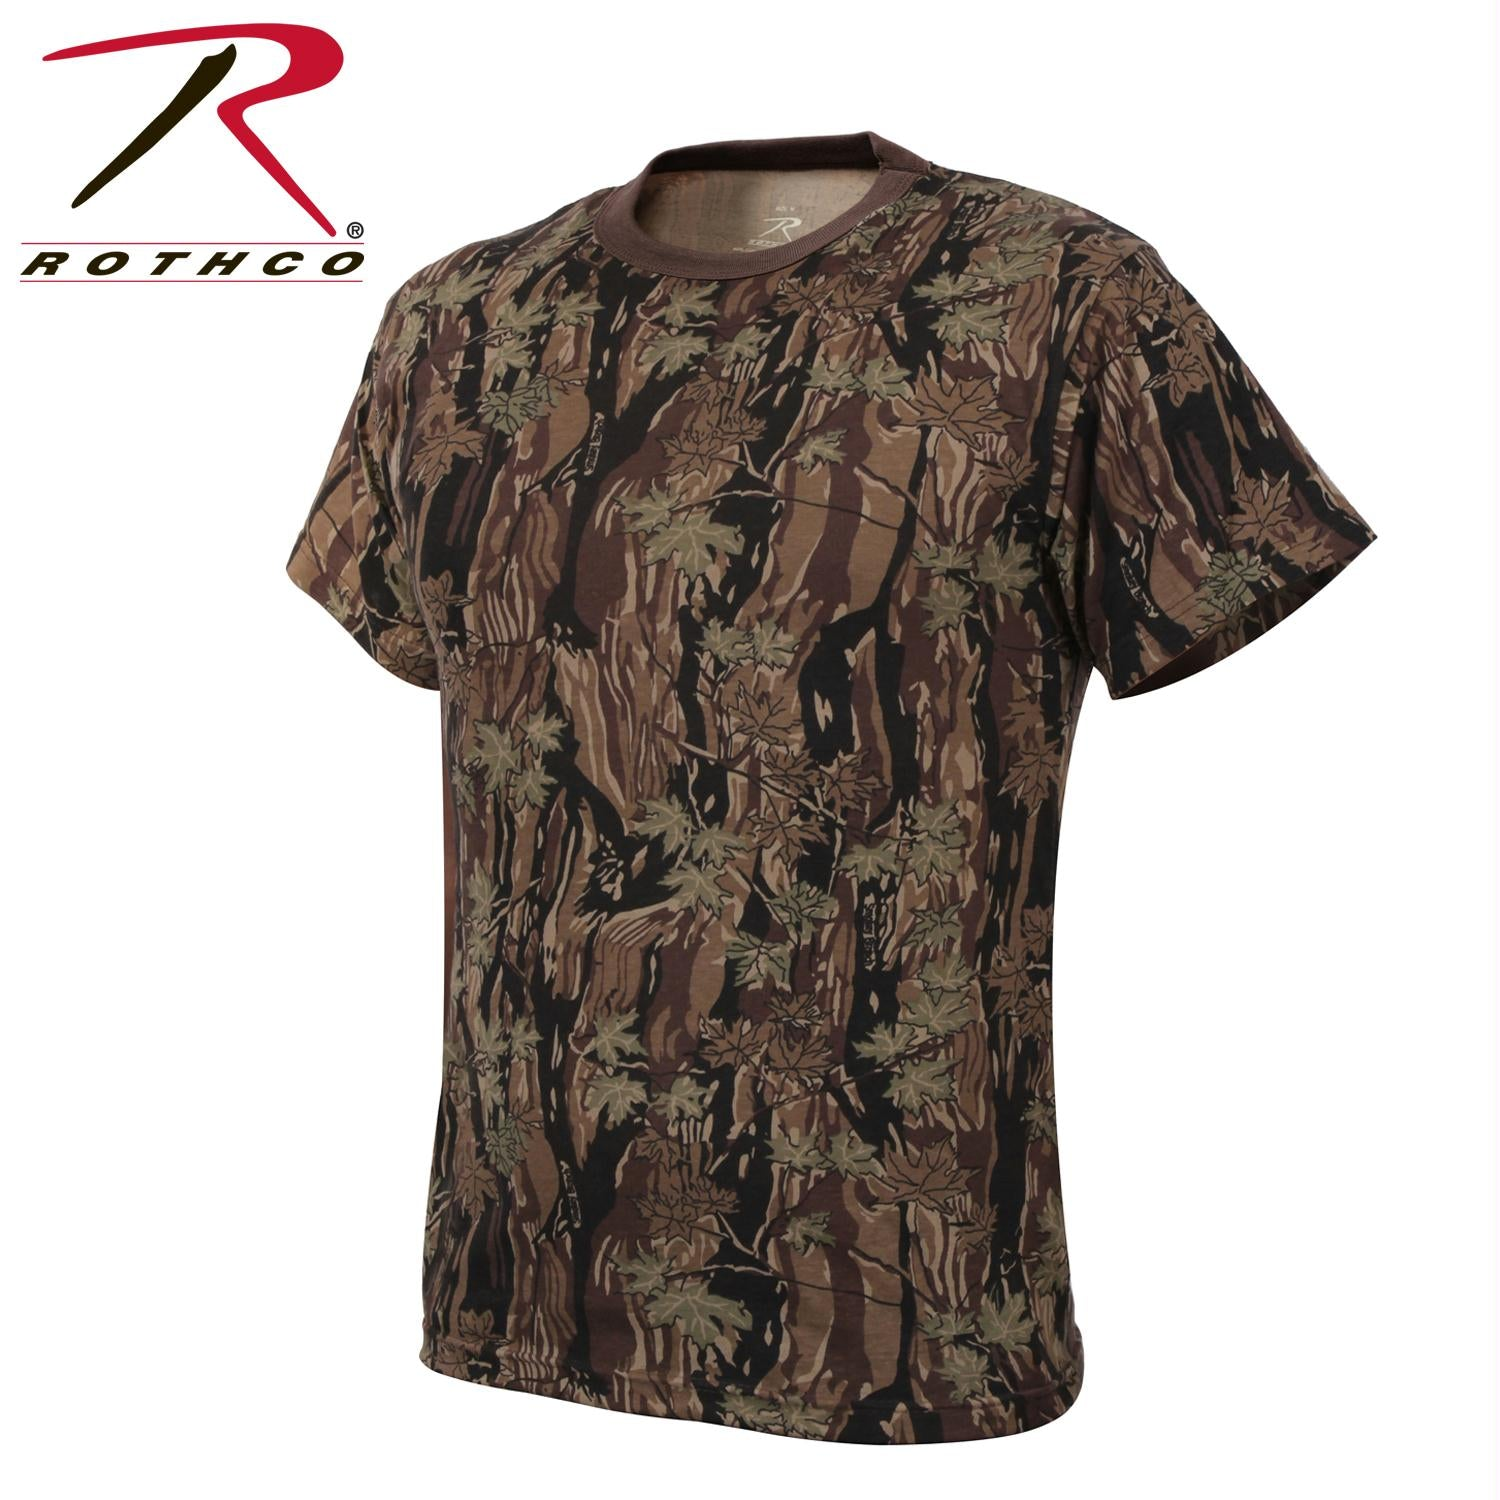 Rothco Kids Camo T-Shirts - Smokey Branch Camo / S